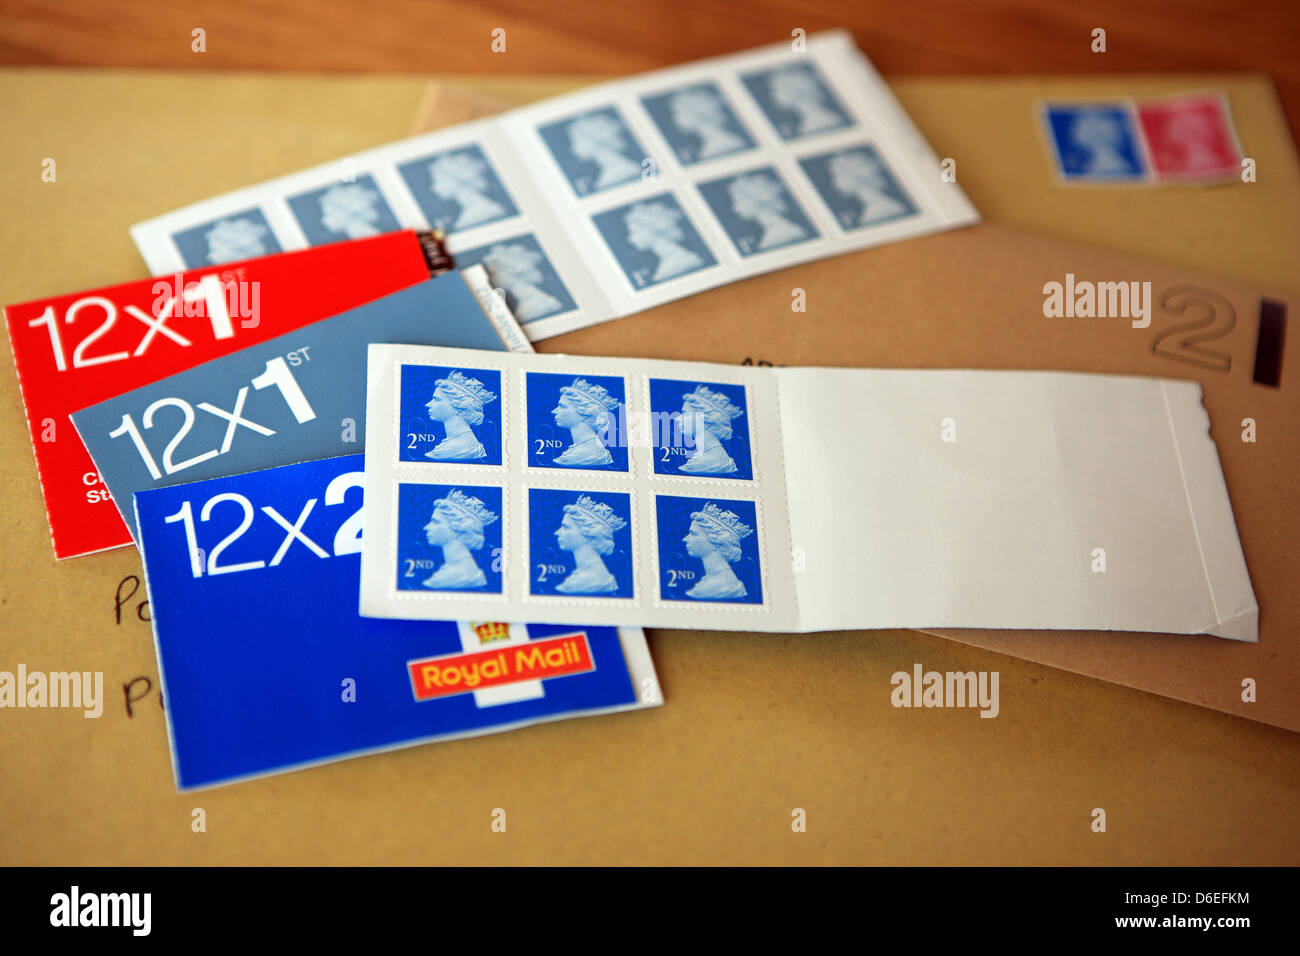 UK stamps sitting on top of envelopes - Stock Image